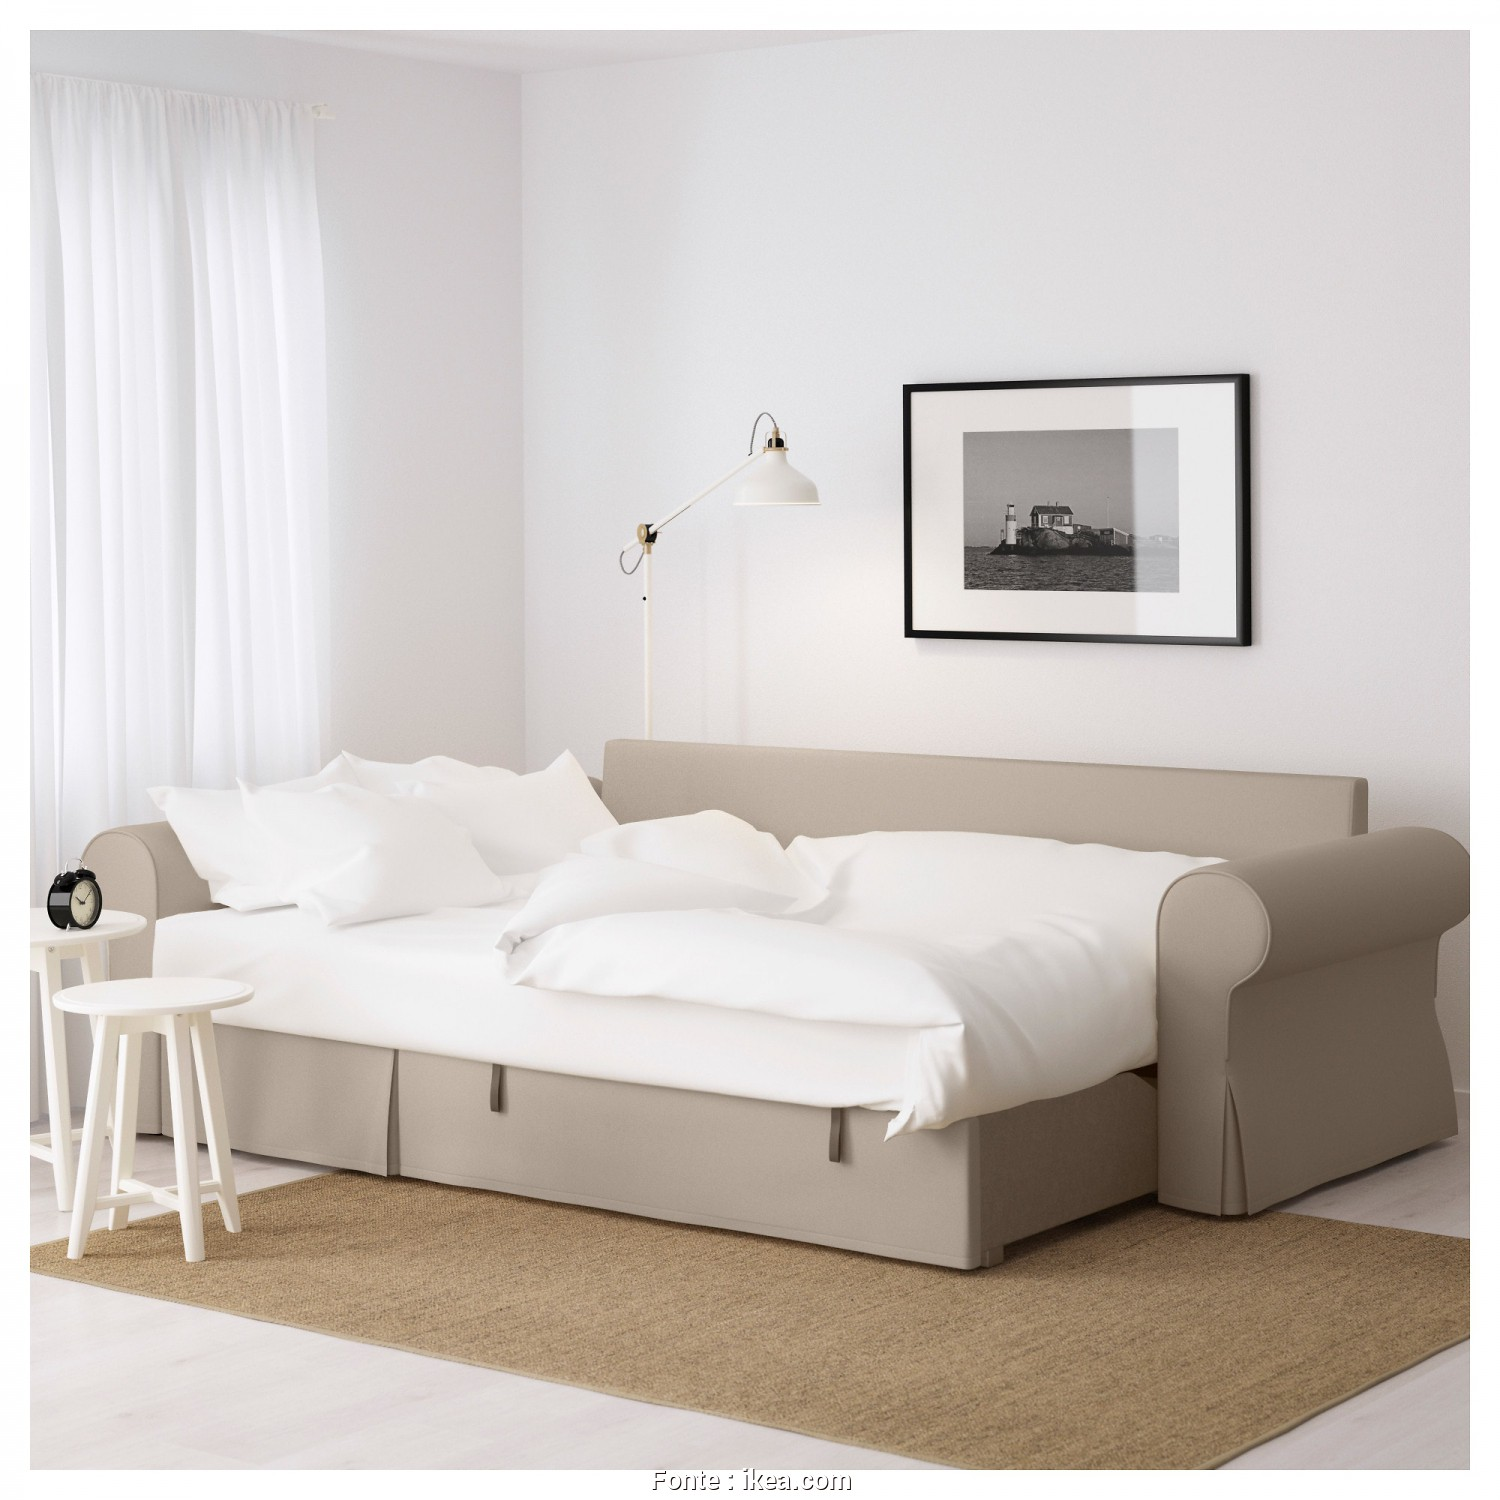 Ikea Backabro Sofa, Assembly Instructions, Modesto IKEA BACKABRO Sofa, With Chaise Longue Readily Converts Into A Bed